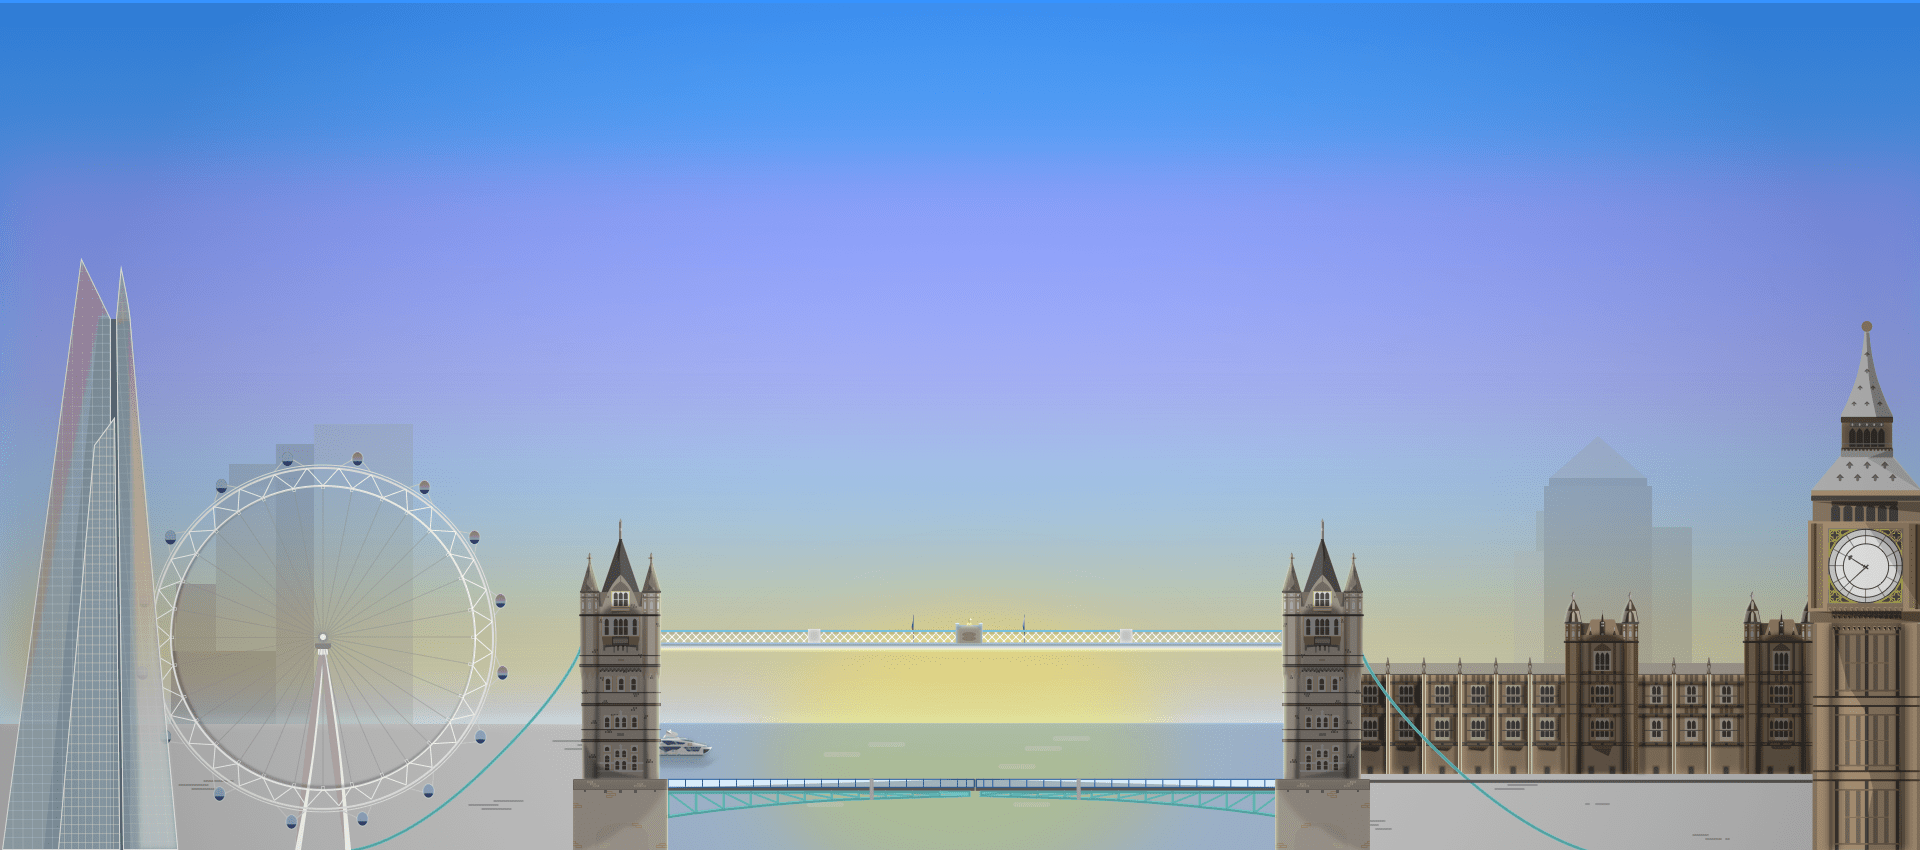 Graphic of London skyline